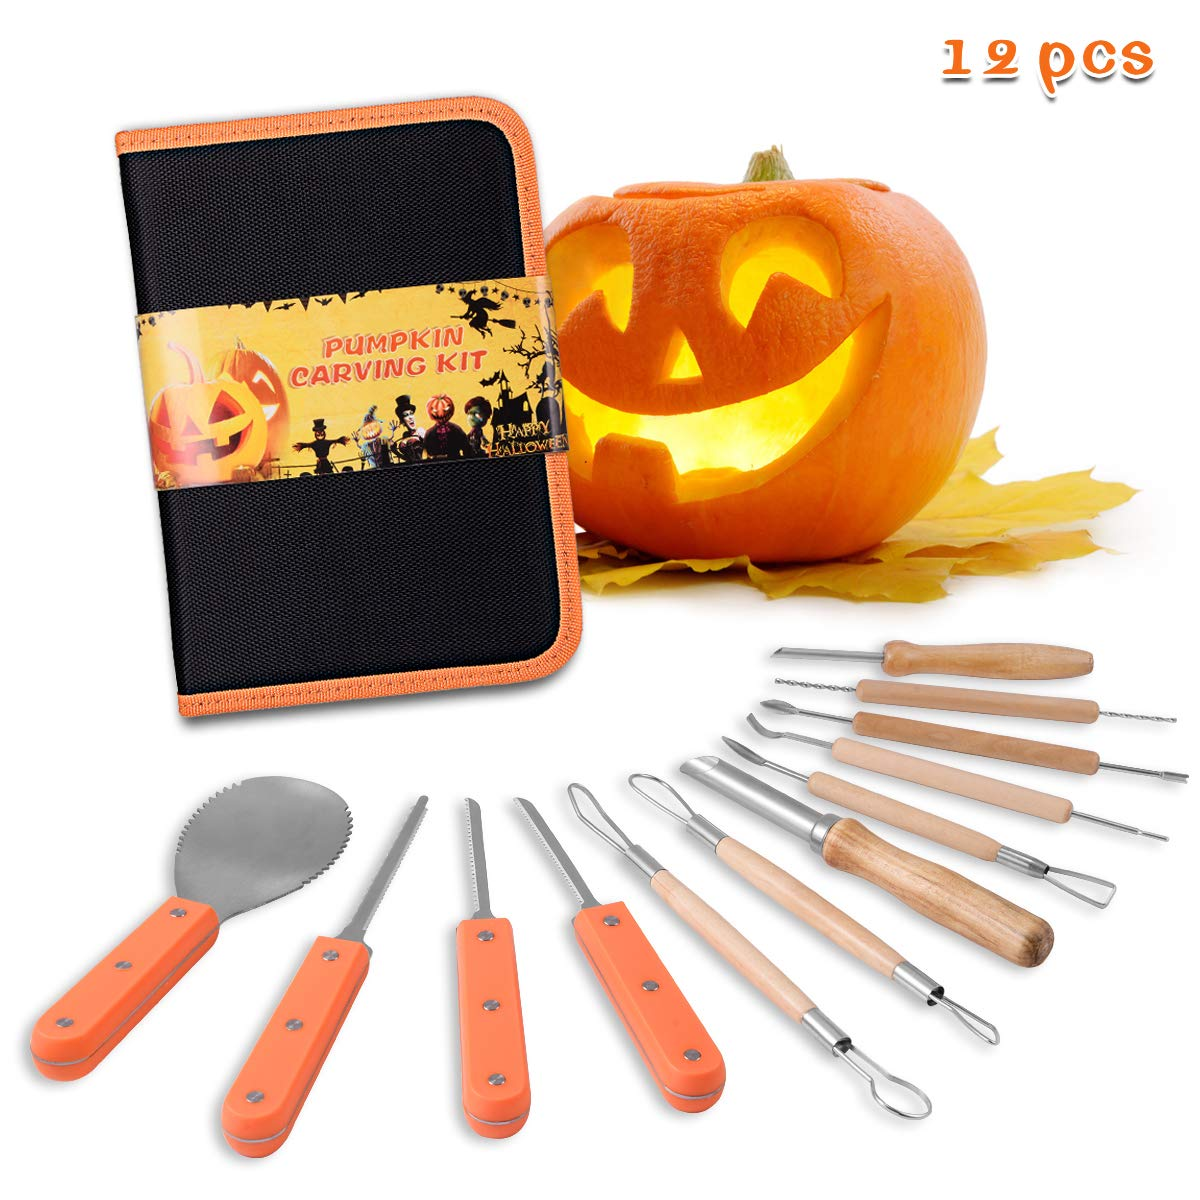 Kearui Pumpkin Carving Kit, Includes 12 Pcs Stainless Steel As a Carving Set for Pumpkin Halloween Decoration Easily Sculpting Jack-O-Lanter Pumpkin Decorating Kits by Kearui